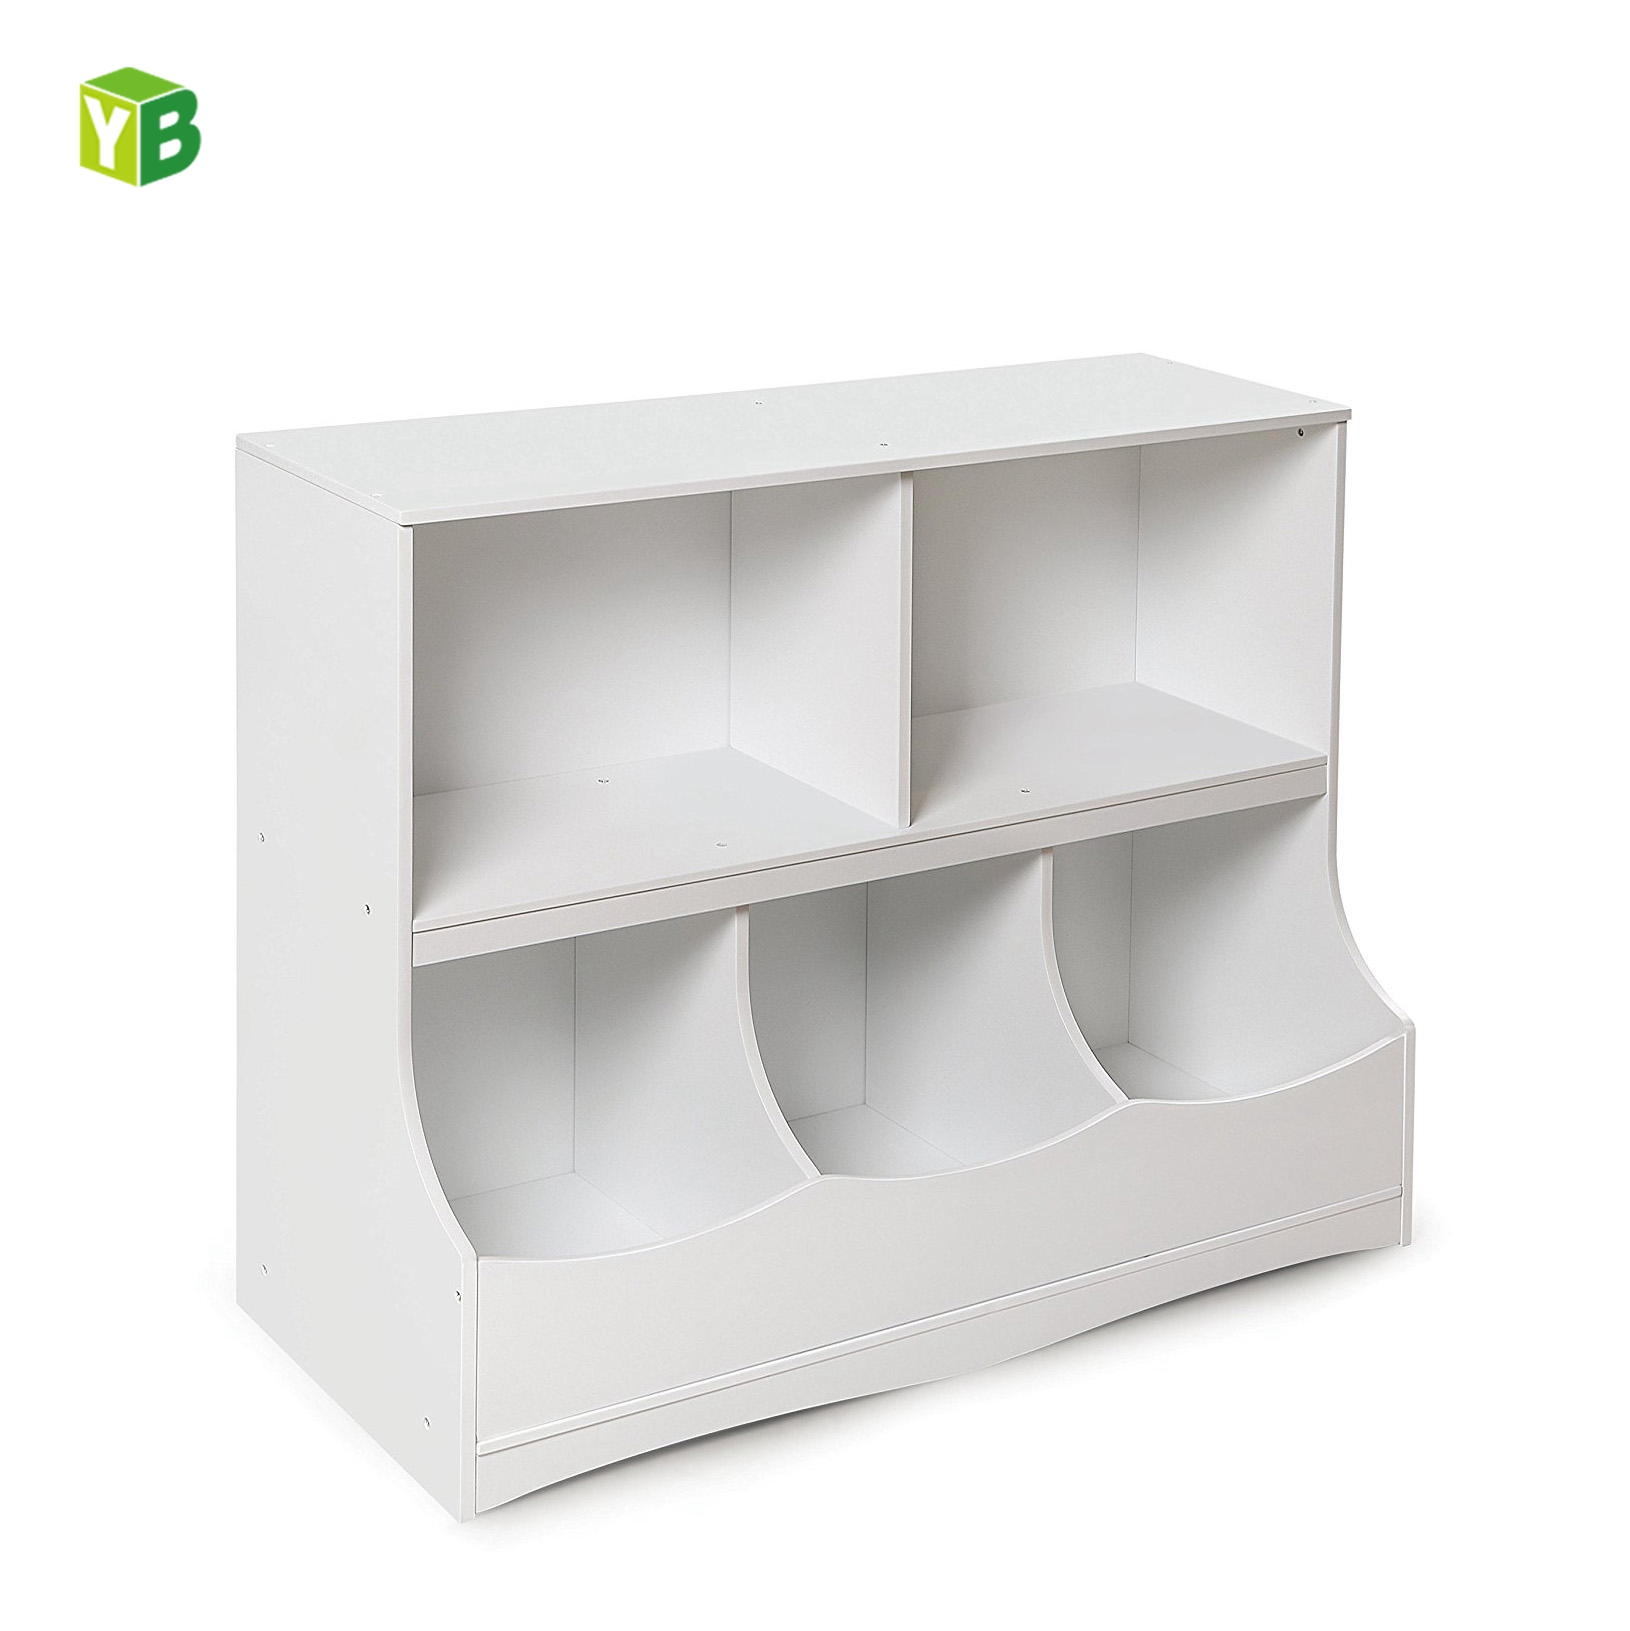 Cubby Wooden Mdf Kid Toy Storage Cabinet For Kids Furniture Storage   Buy  Wooden Toy Cabinet,Mdf Toy Storage Cabinet,Kid Toy Cabinet Product On  Alibaba.com